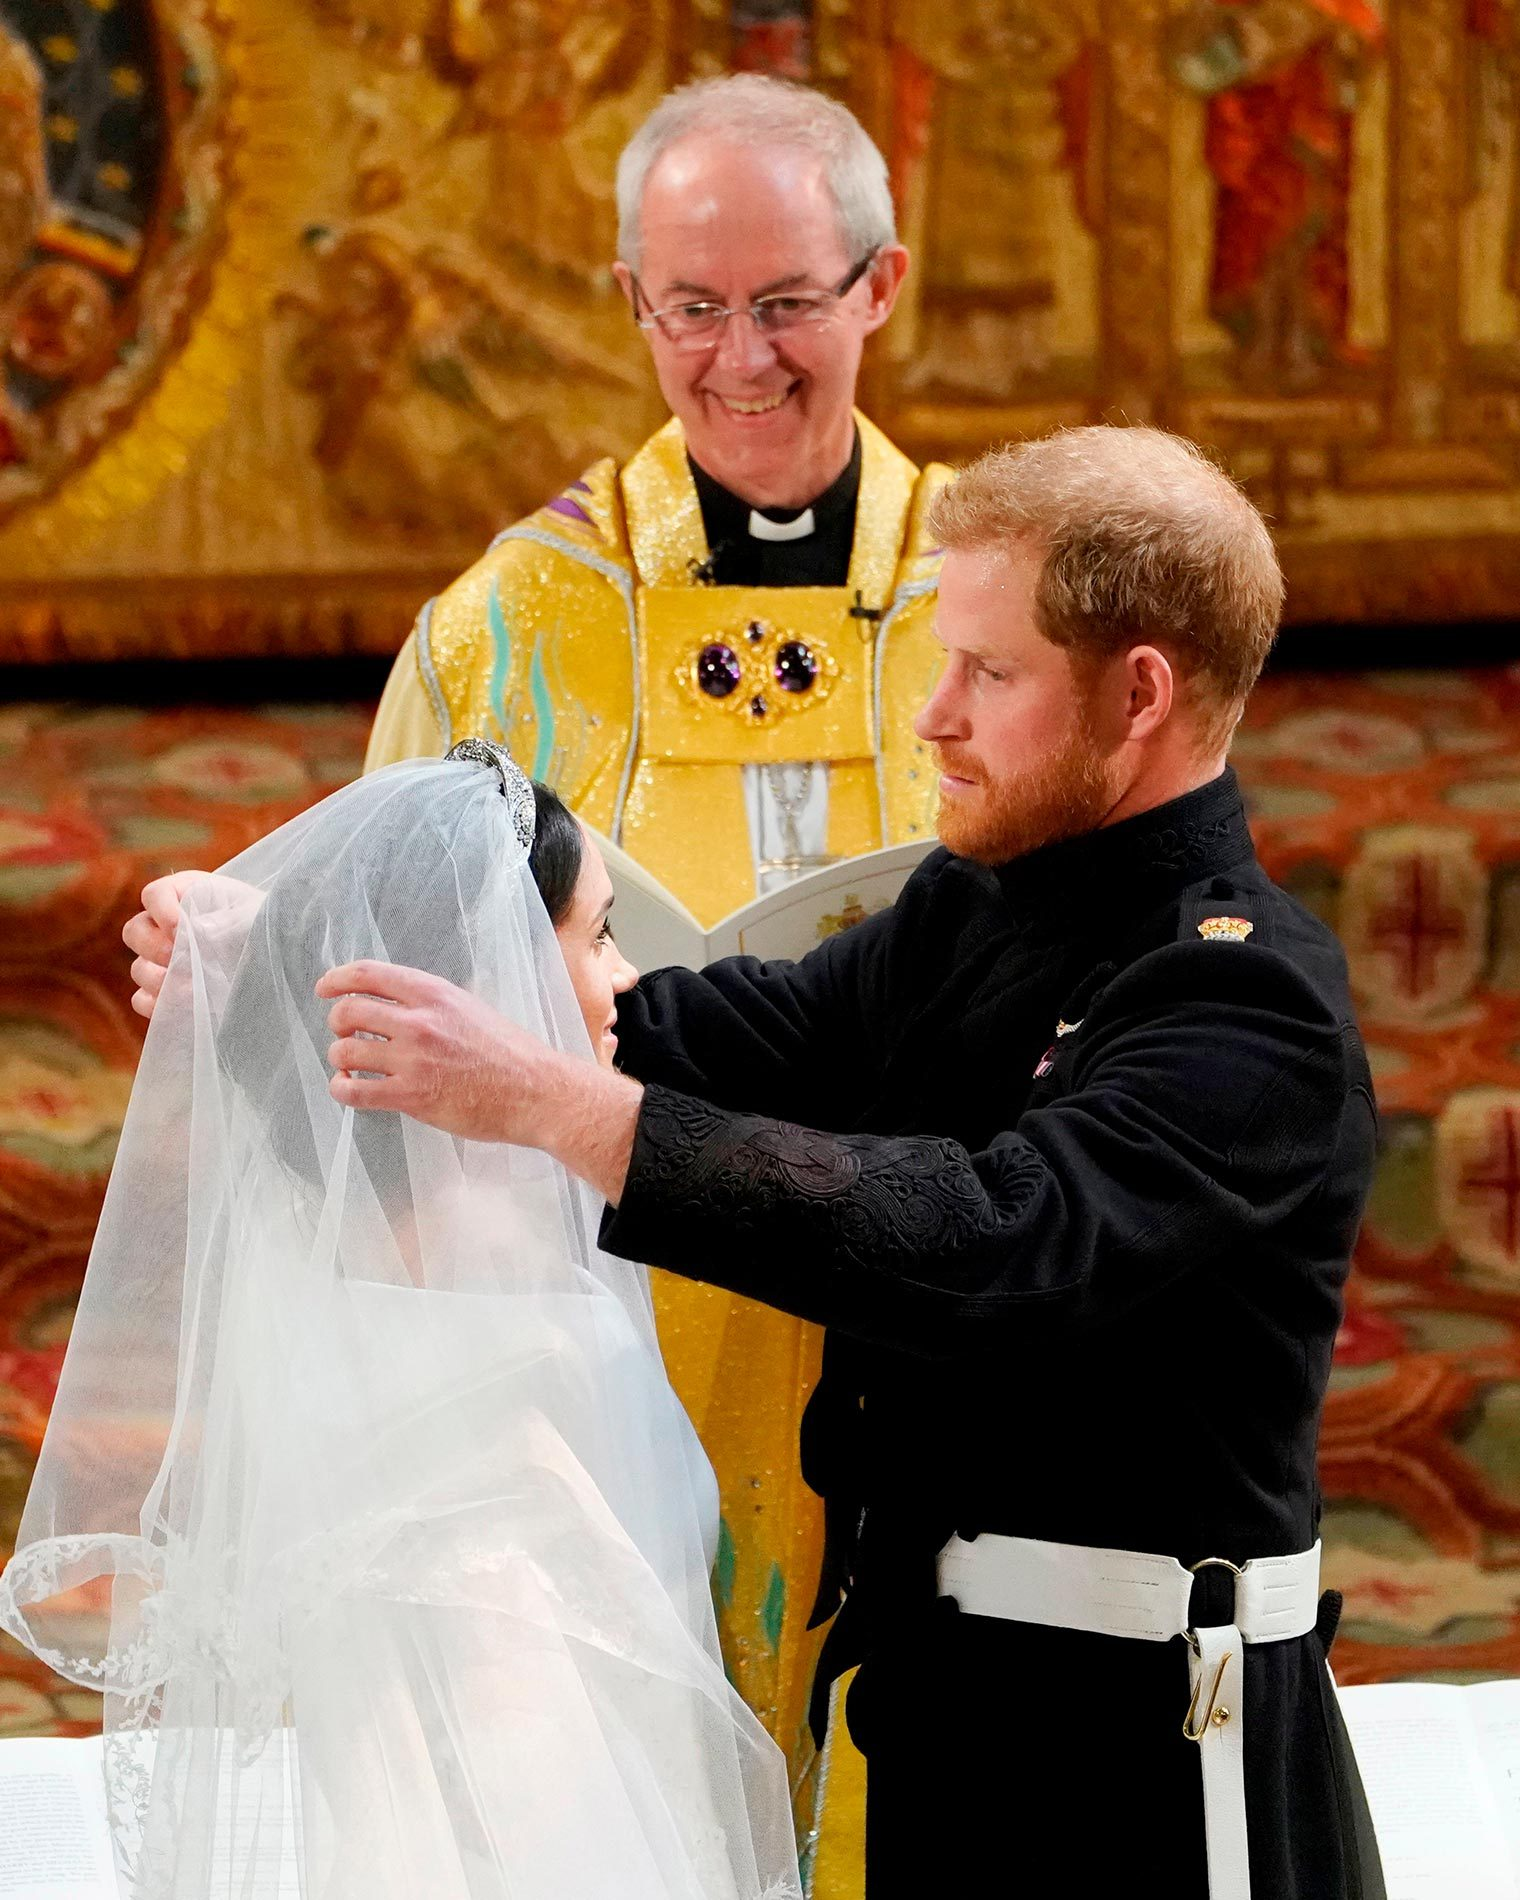 Details You Never Noticed About Meghan Markle's Wedding